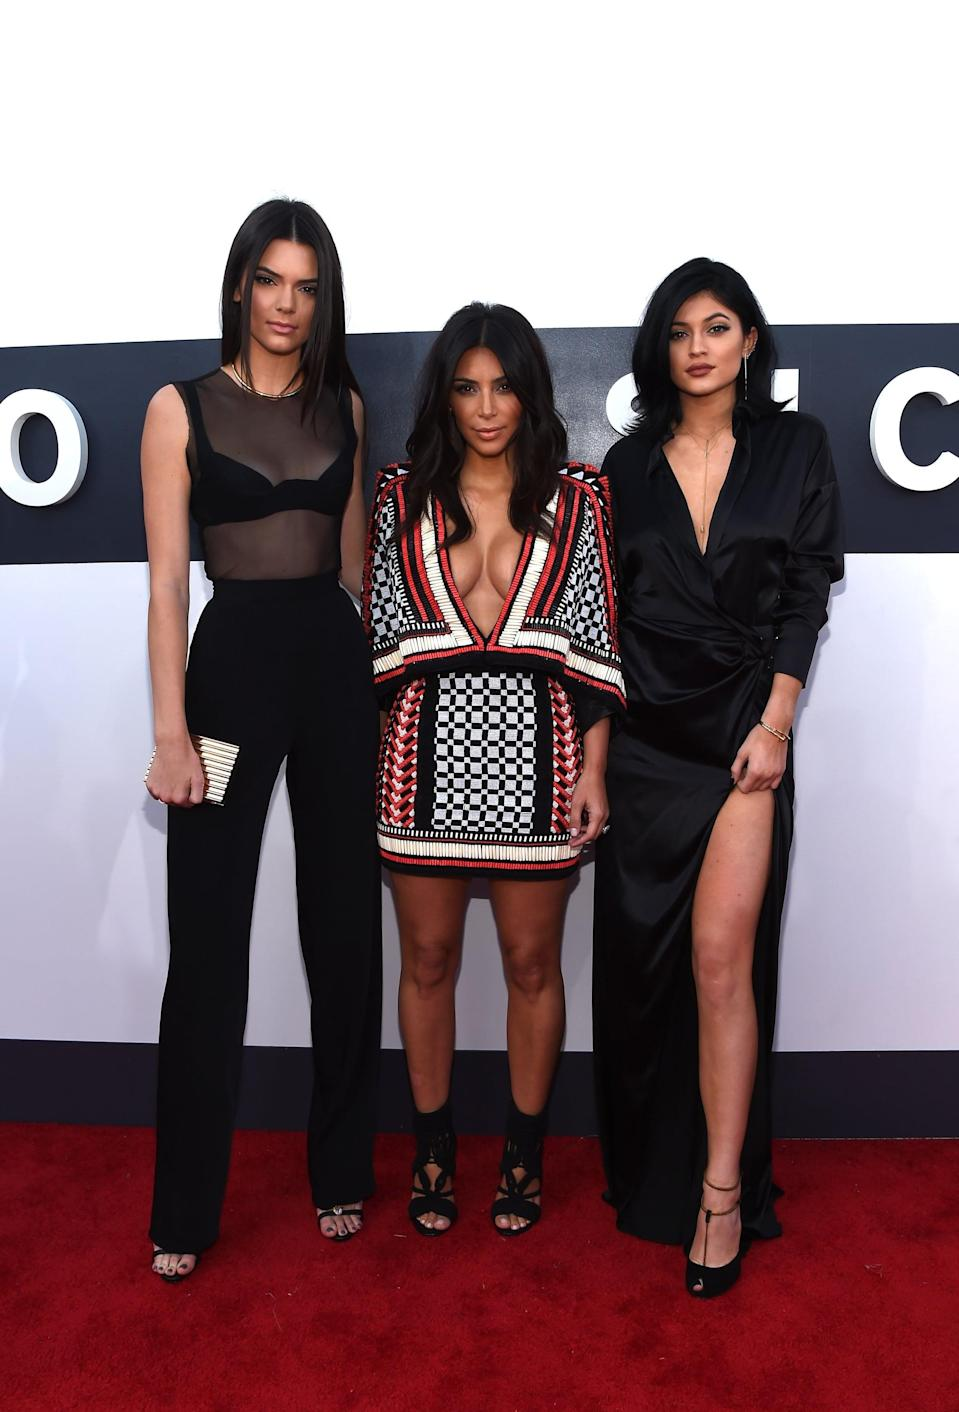 """<p>By 2014, Kendall and Kylie were making names for themselves and also became familiar faces on the red carpet. This was also the year <a href=""""https://www.popsugar.com/fashion/photo-gallery/35465102/image/35552181/Kim-Kardashian-2014-MTV-VMAs"""" class=""""link rapid-noclick-resp"""" rel=""""nofollow noopener"""" target=""""_blank"""" data-ylk=""""slk:where Balmain reigned supreme"""">where Balmain reigned supreme</a> in Kim Kardashians' closet. </p>"""